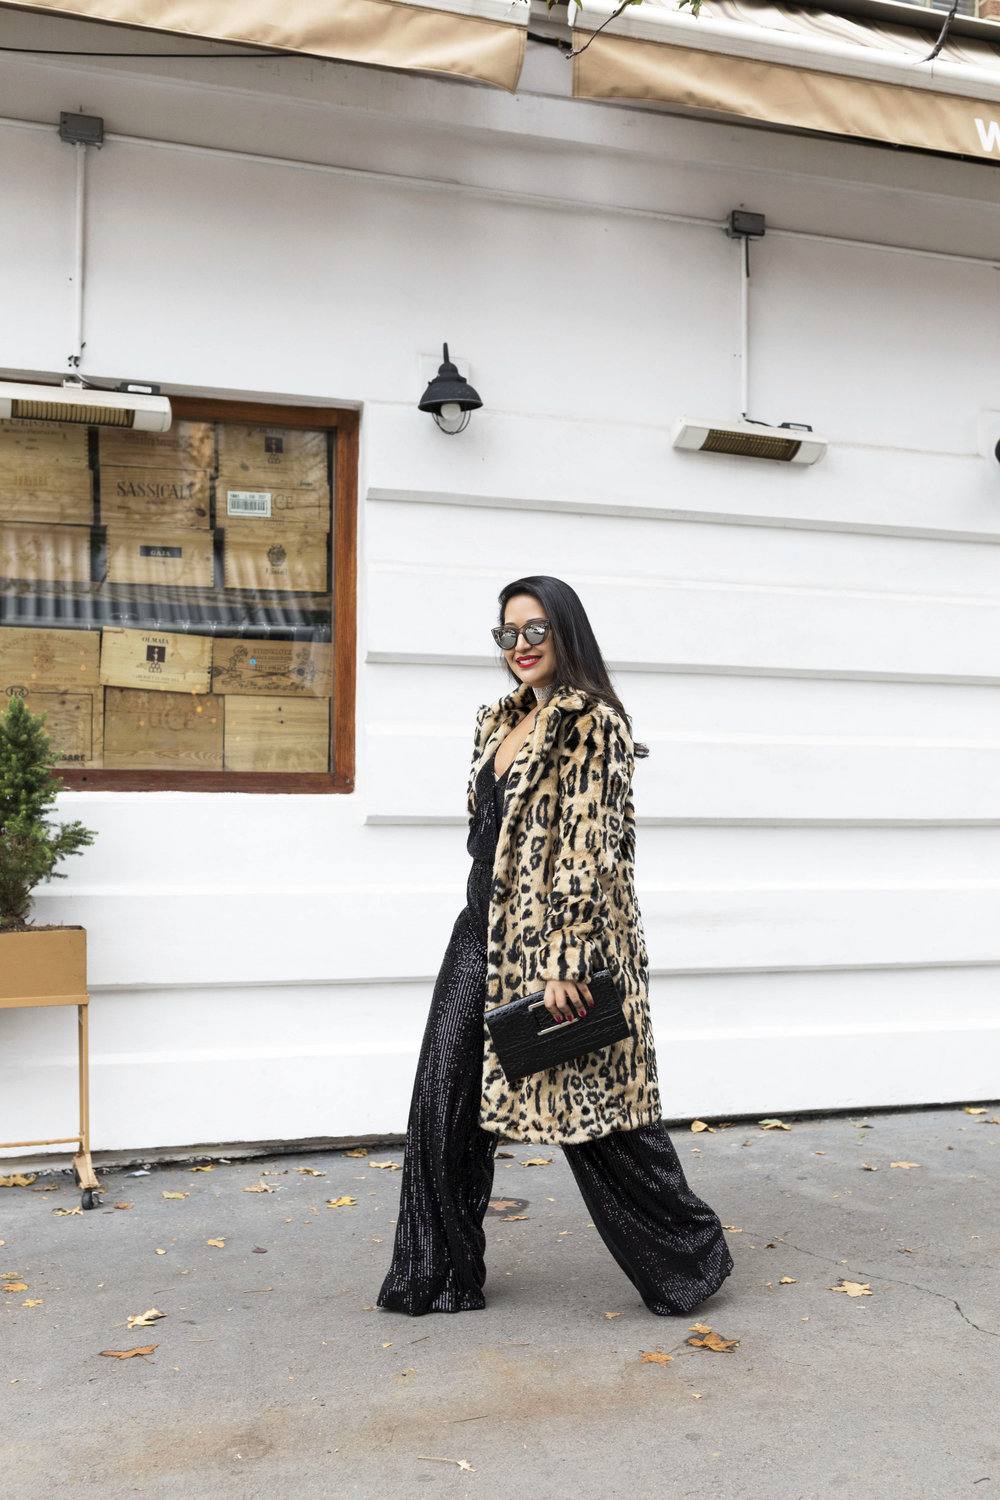 Krity S x New Years Eve Outfit x Sequin Jumpsuit and Cheetah Faux Fur7.jpg